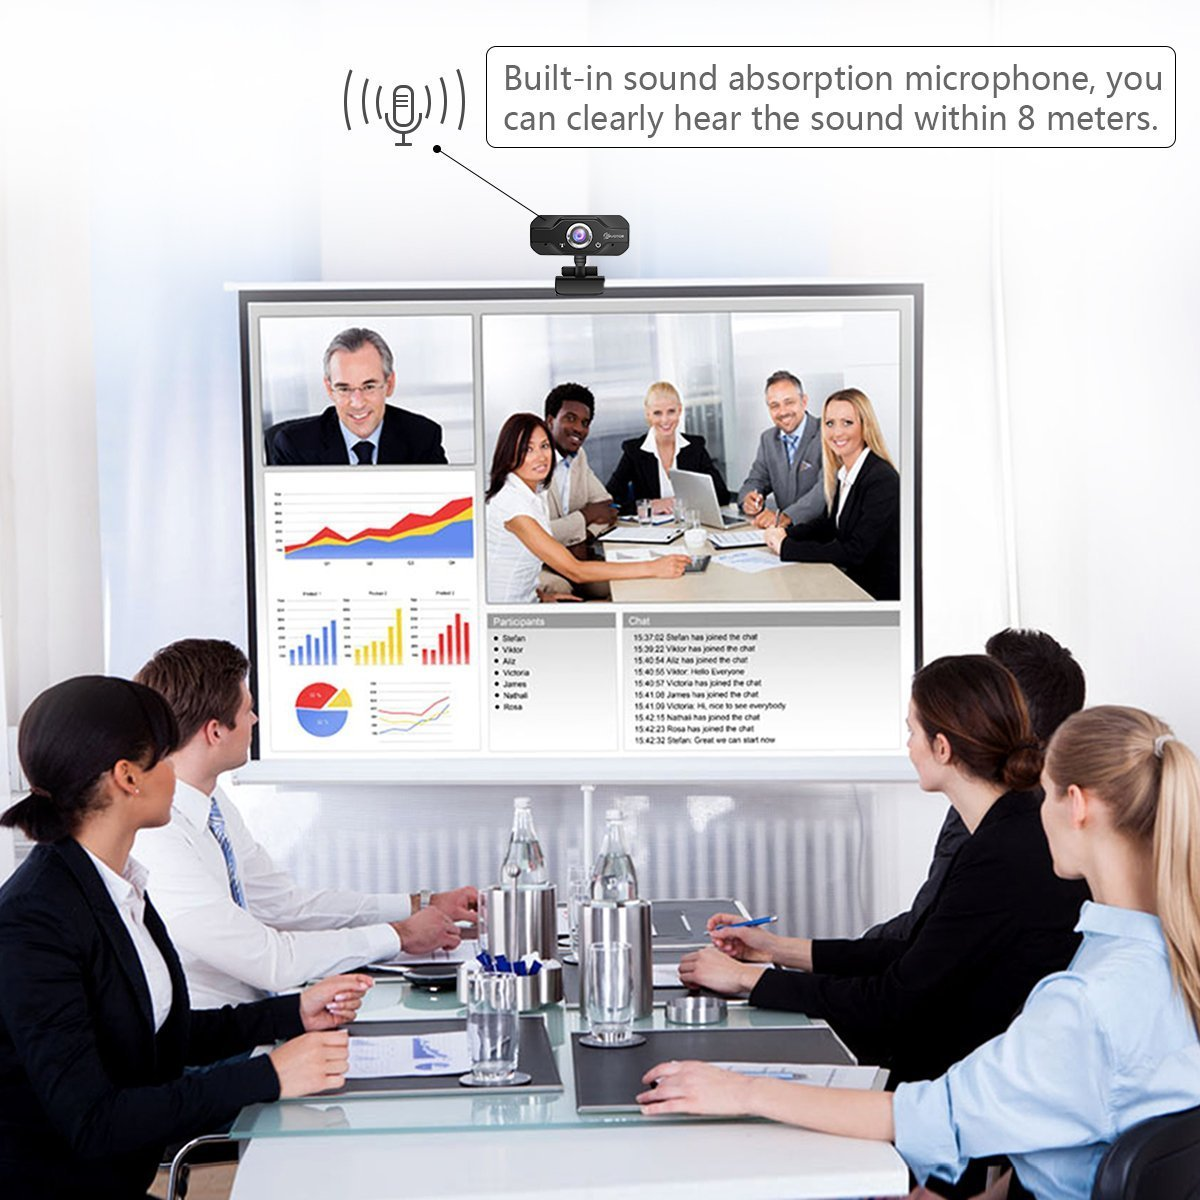 720P HD Webcam, EIVOTOR USB Mini Computer Camera with Built-in Microphone for Laptops and Desktop,Black by EIVOTOR (Image #5)